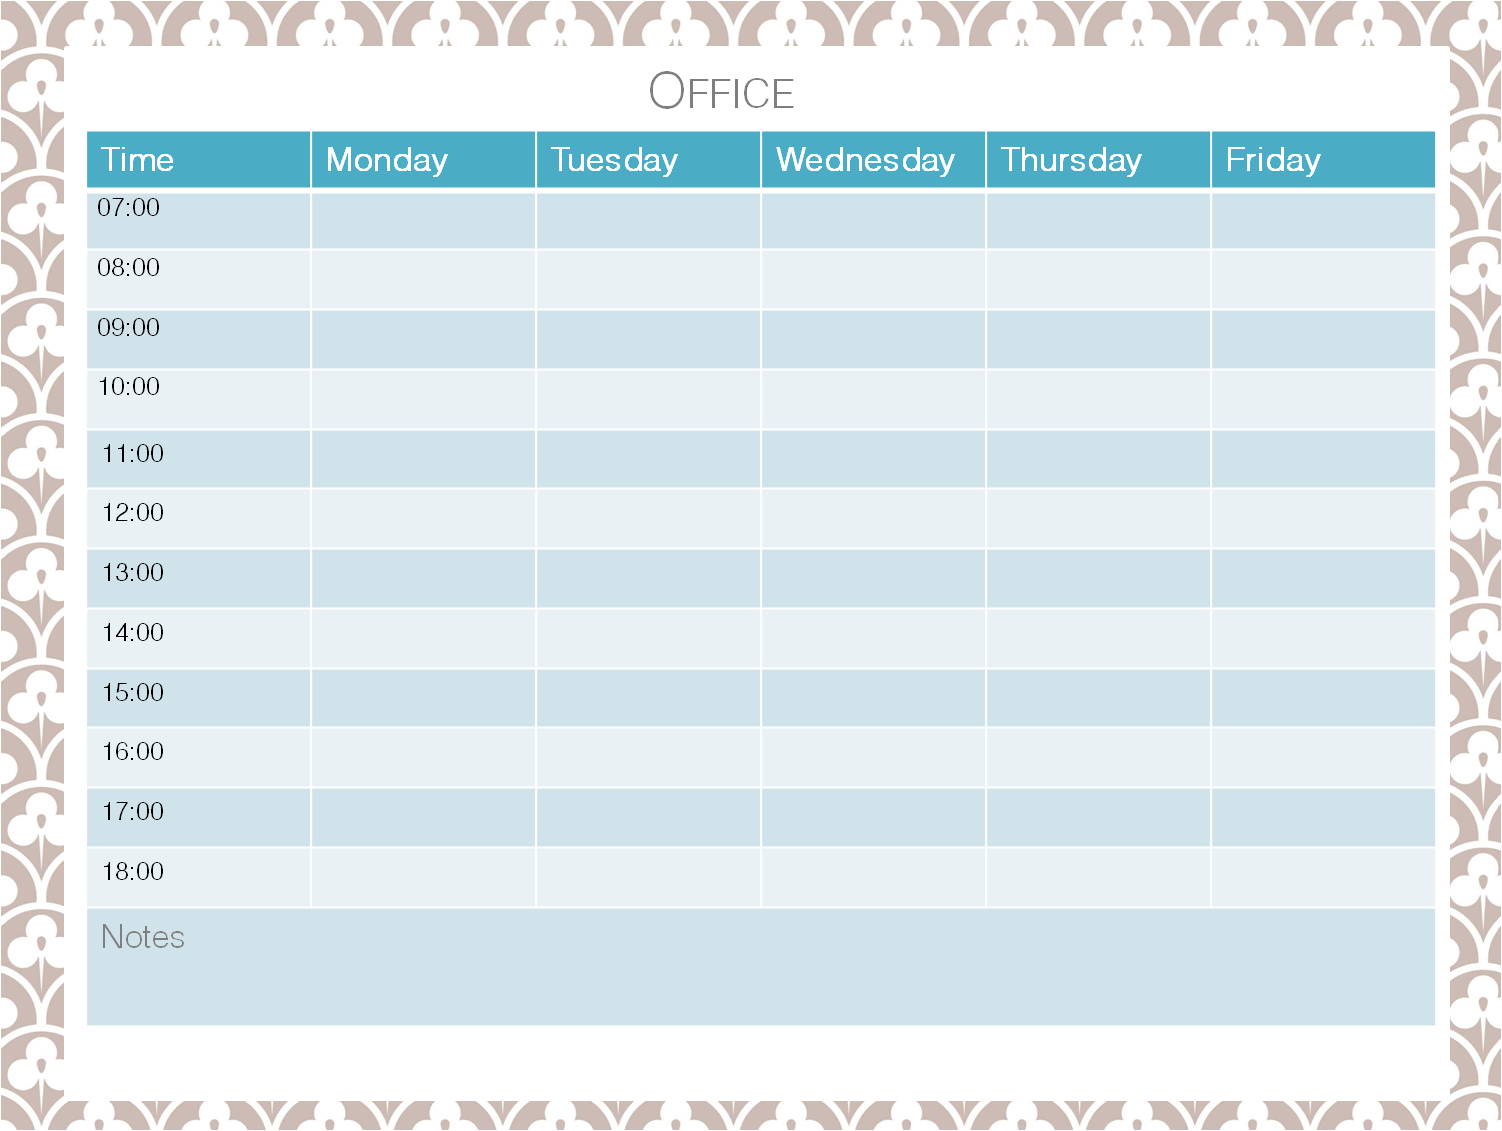 Need Help In The Office With A Weekly Schedule And Want It To Look